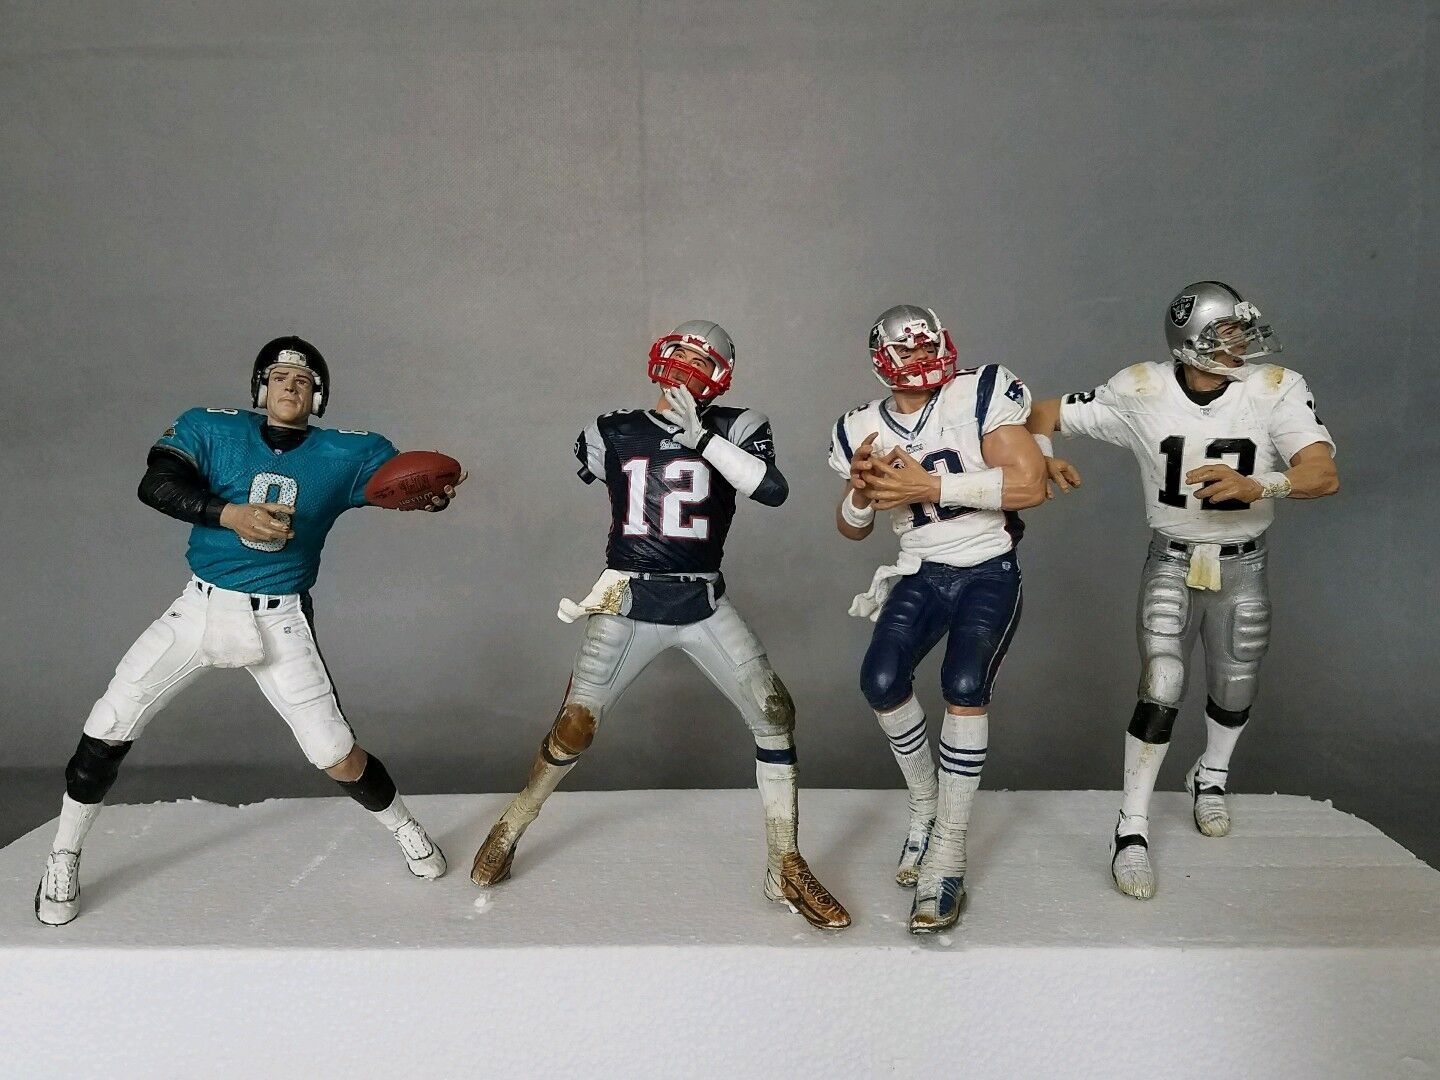 NFL NEW ENGLAND PATRIOTS TOM BRADY 6 1 2  McFARLANES and other figure lot